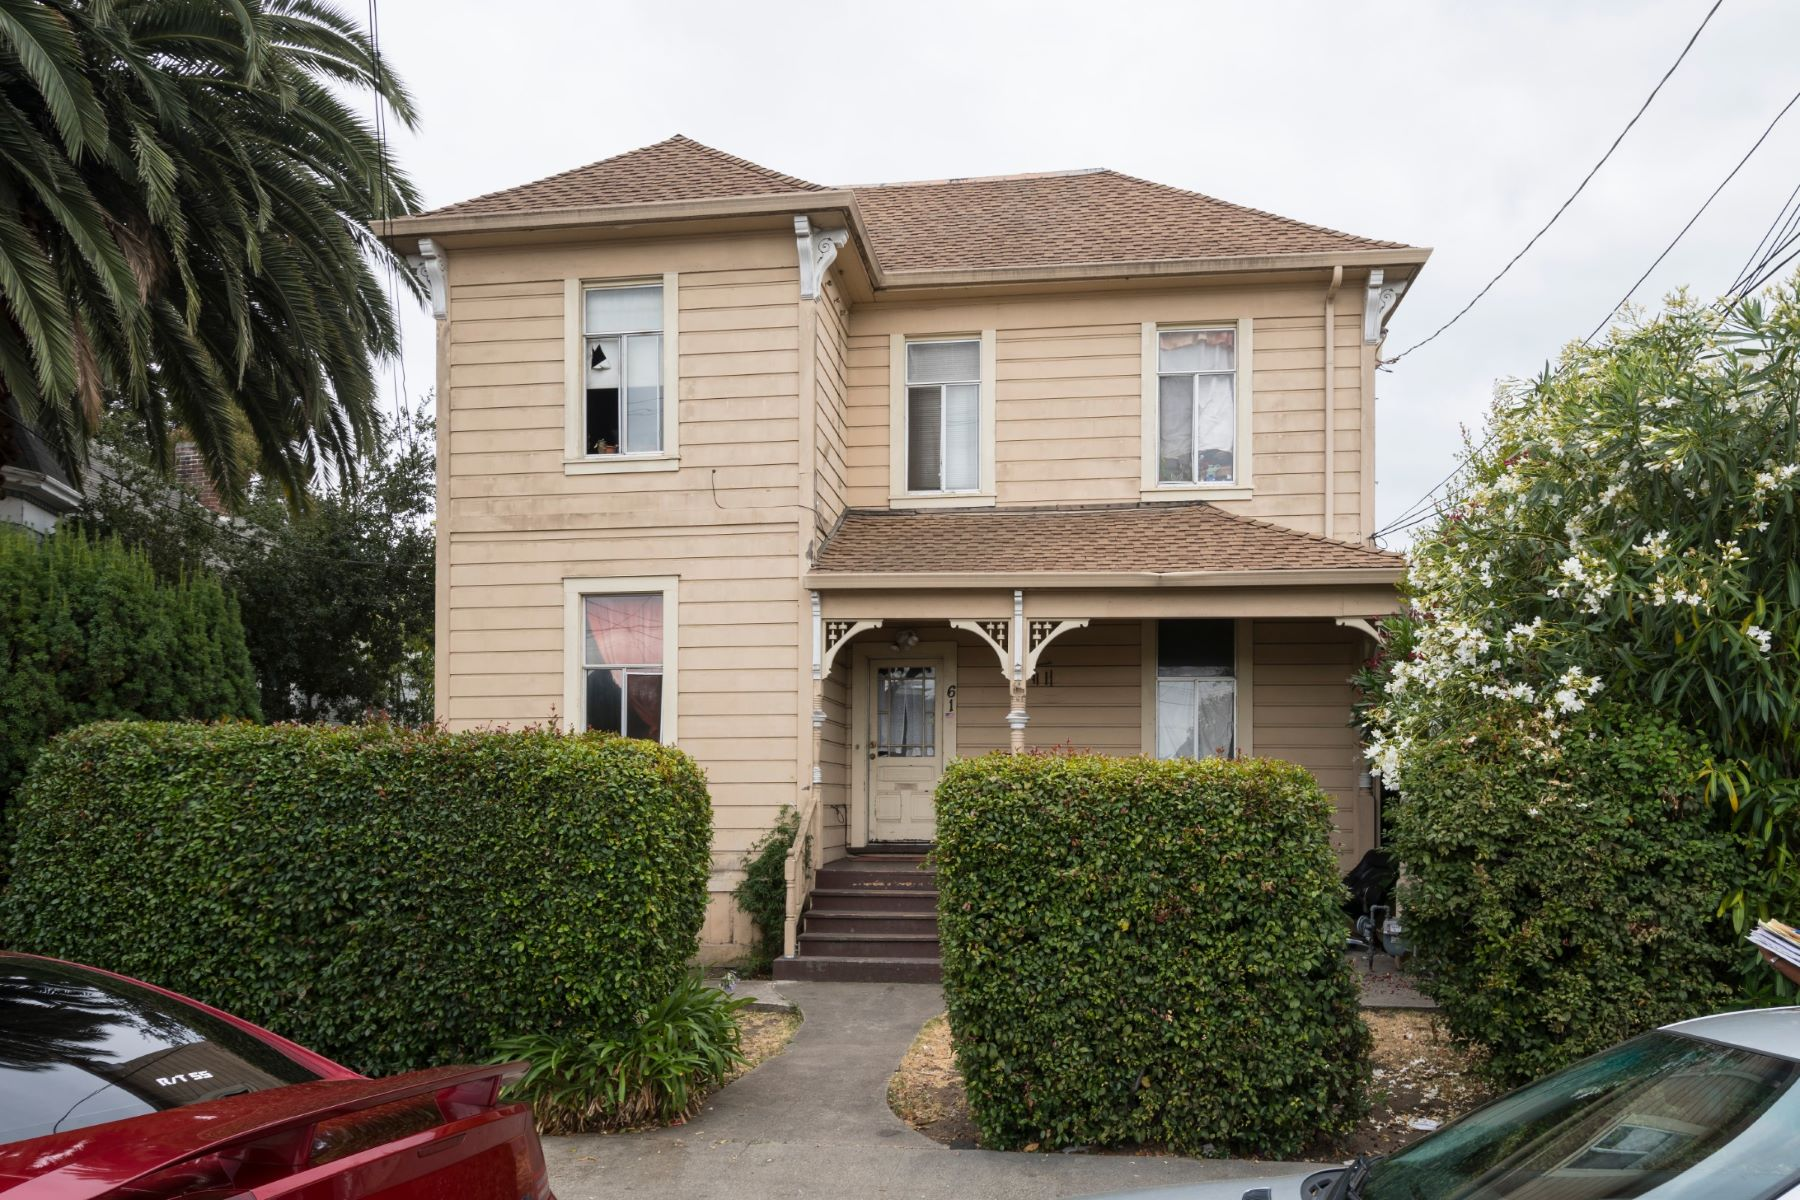 Single Family Home for Active at Victorian Charm With Endless Opportunities 61 North Claremont Street San Mateo, California 94401 United States